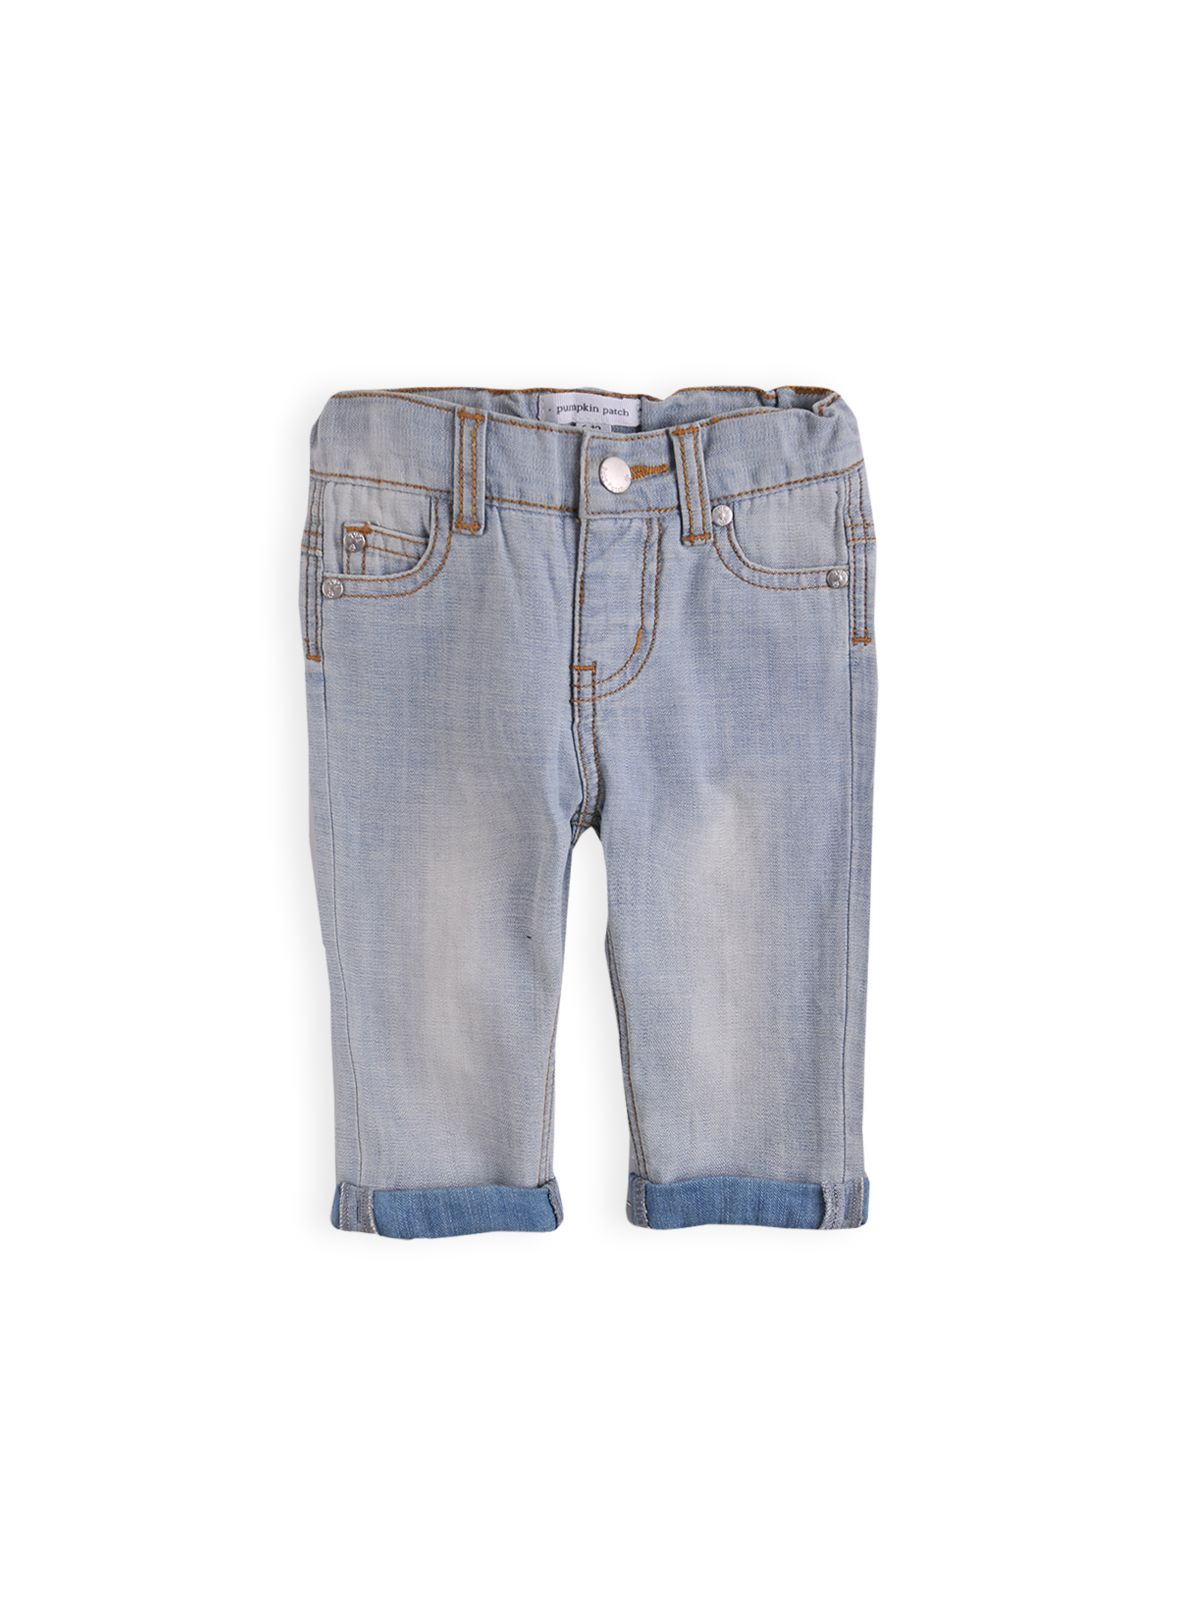 Boys washed out jeans